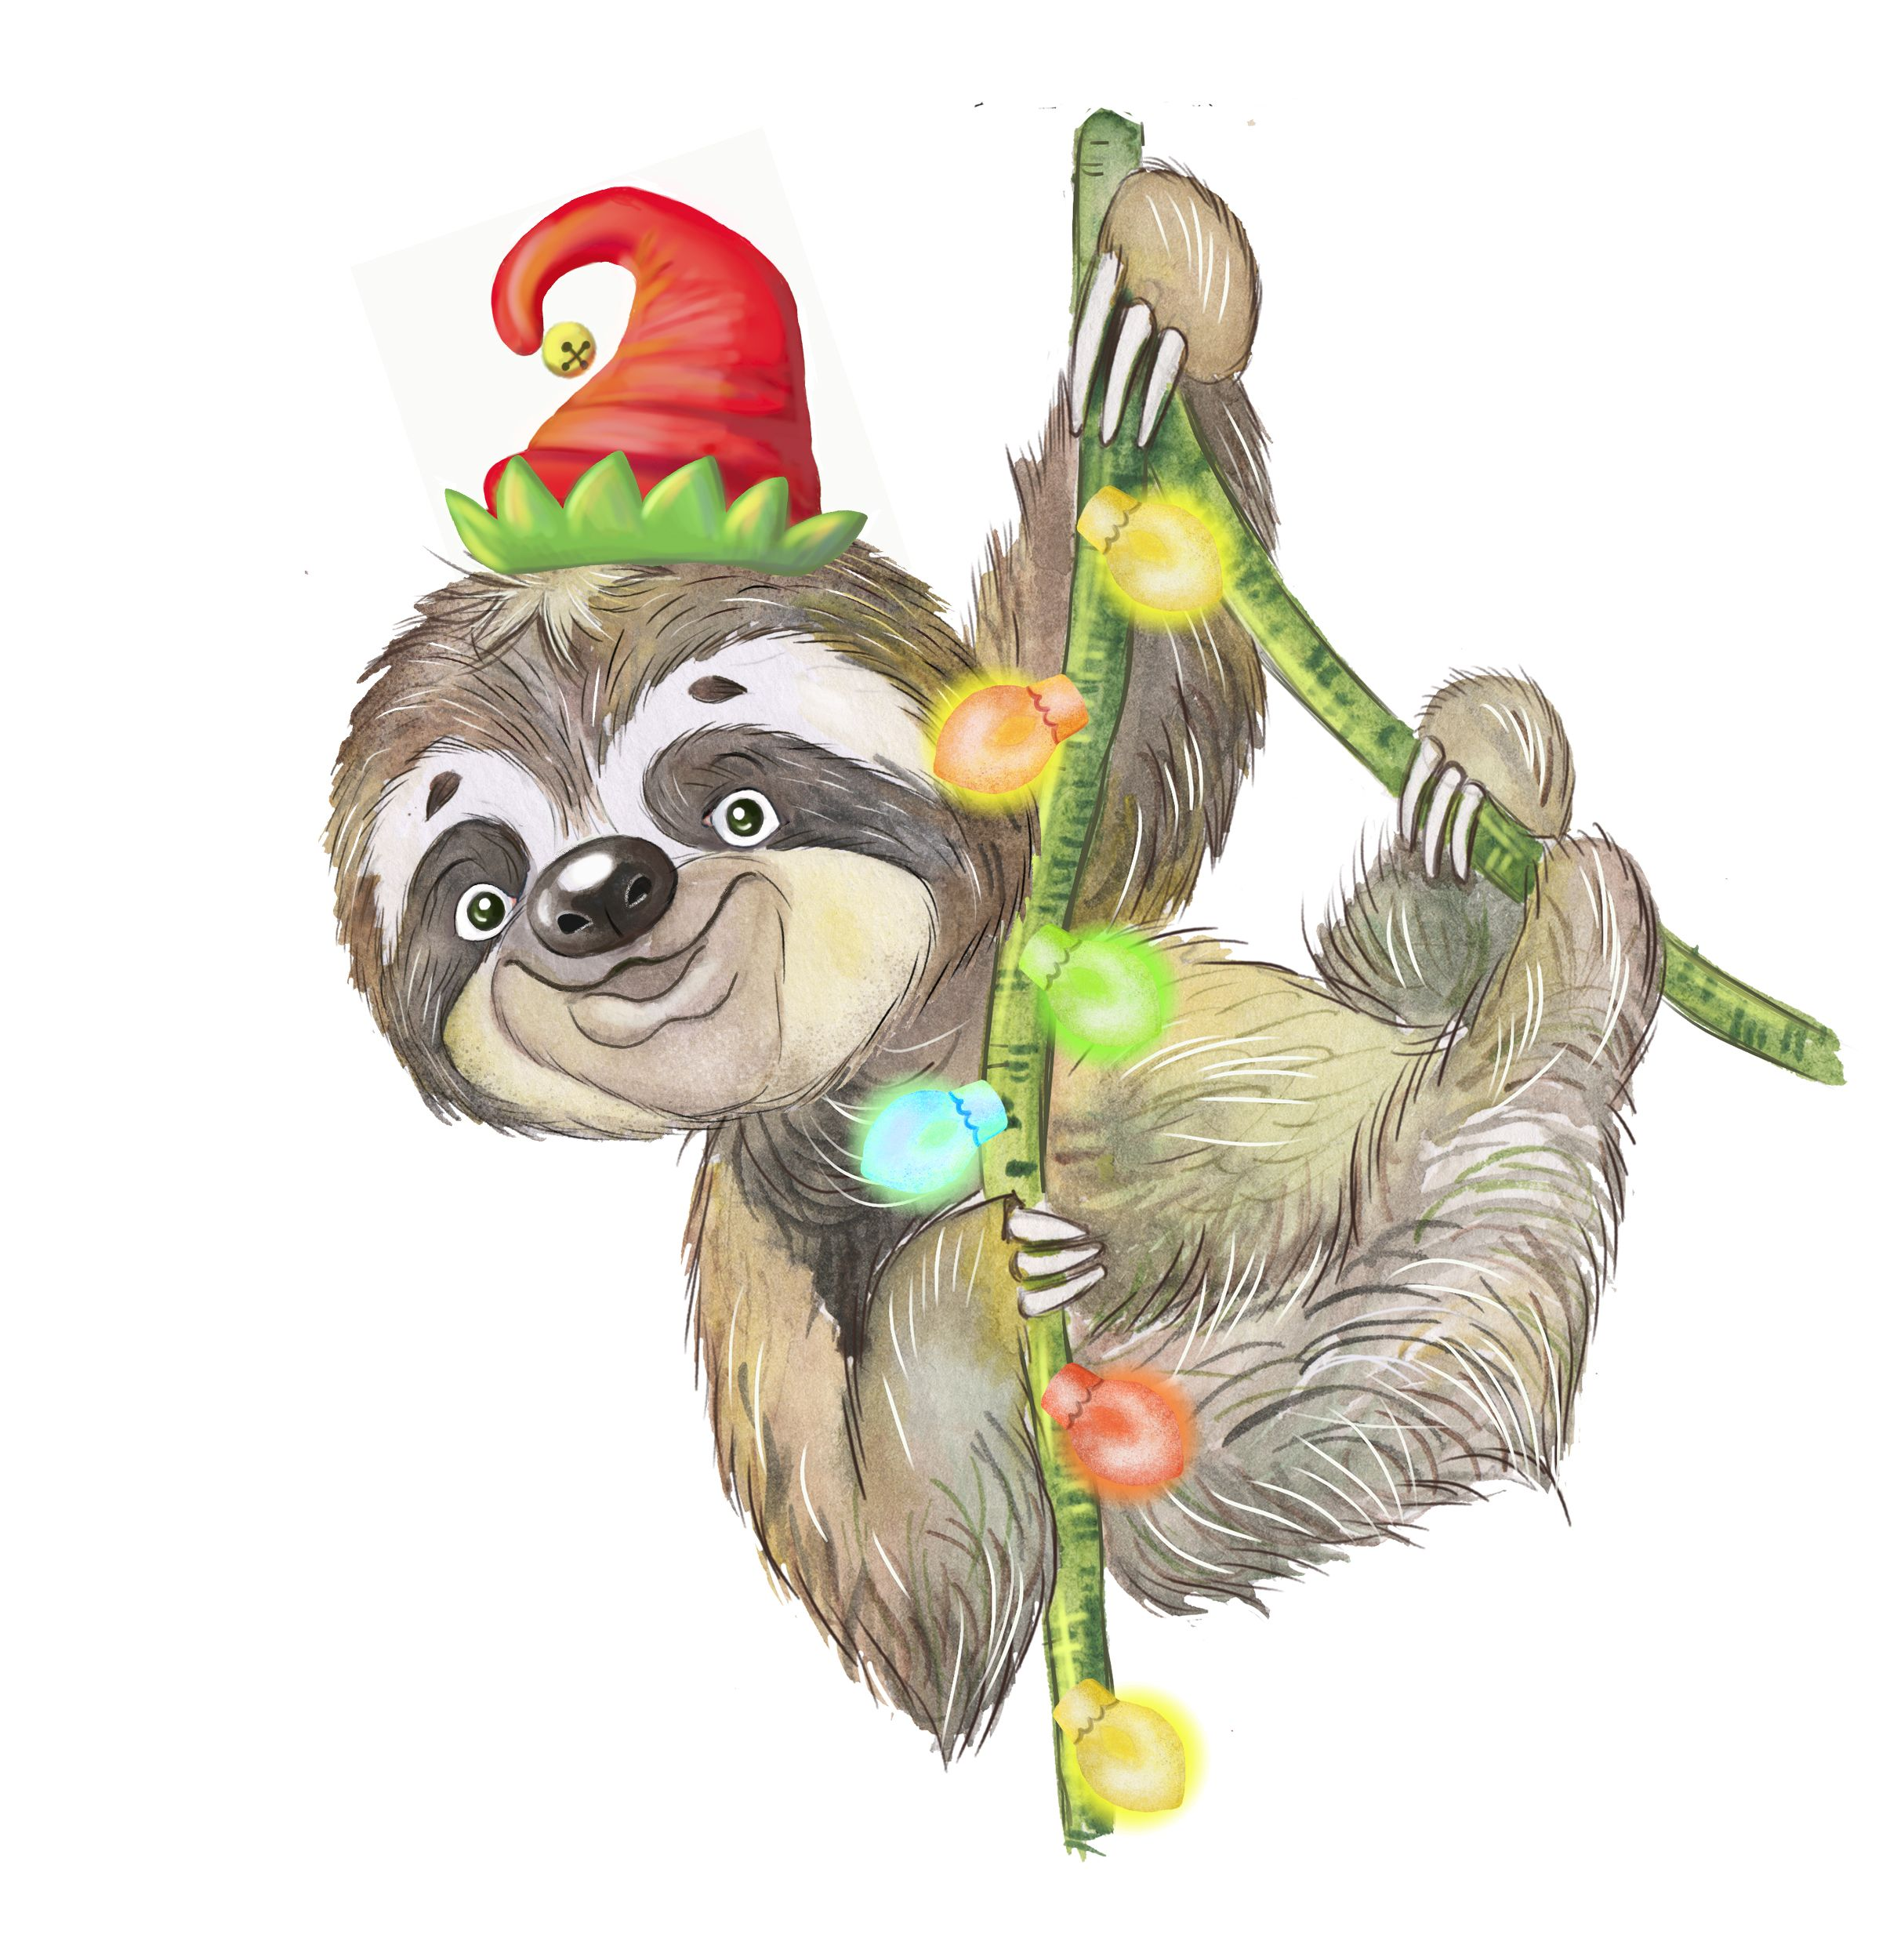 watercolor sloths christmas clipart holiday sloth new year s clipart download png in 2020 christmas clipart sloths funny christmas watercolor pinterest